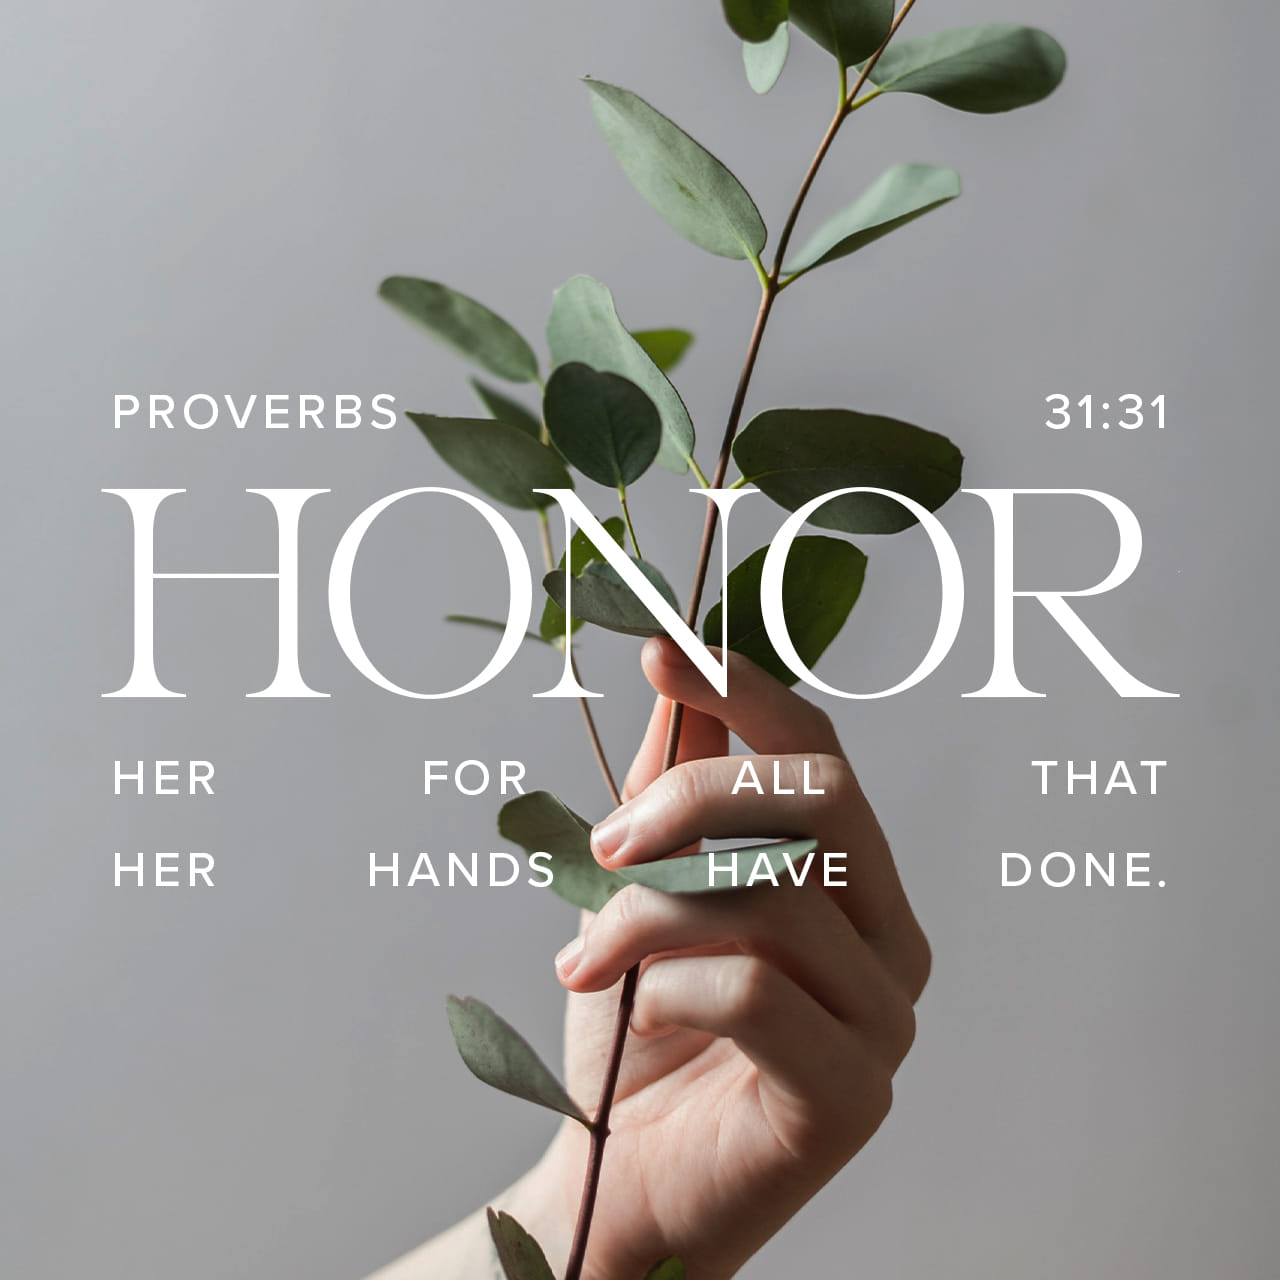 Honor her for all that her hands have done - Proverbs 31:31 - Verse Image